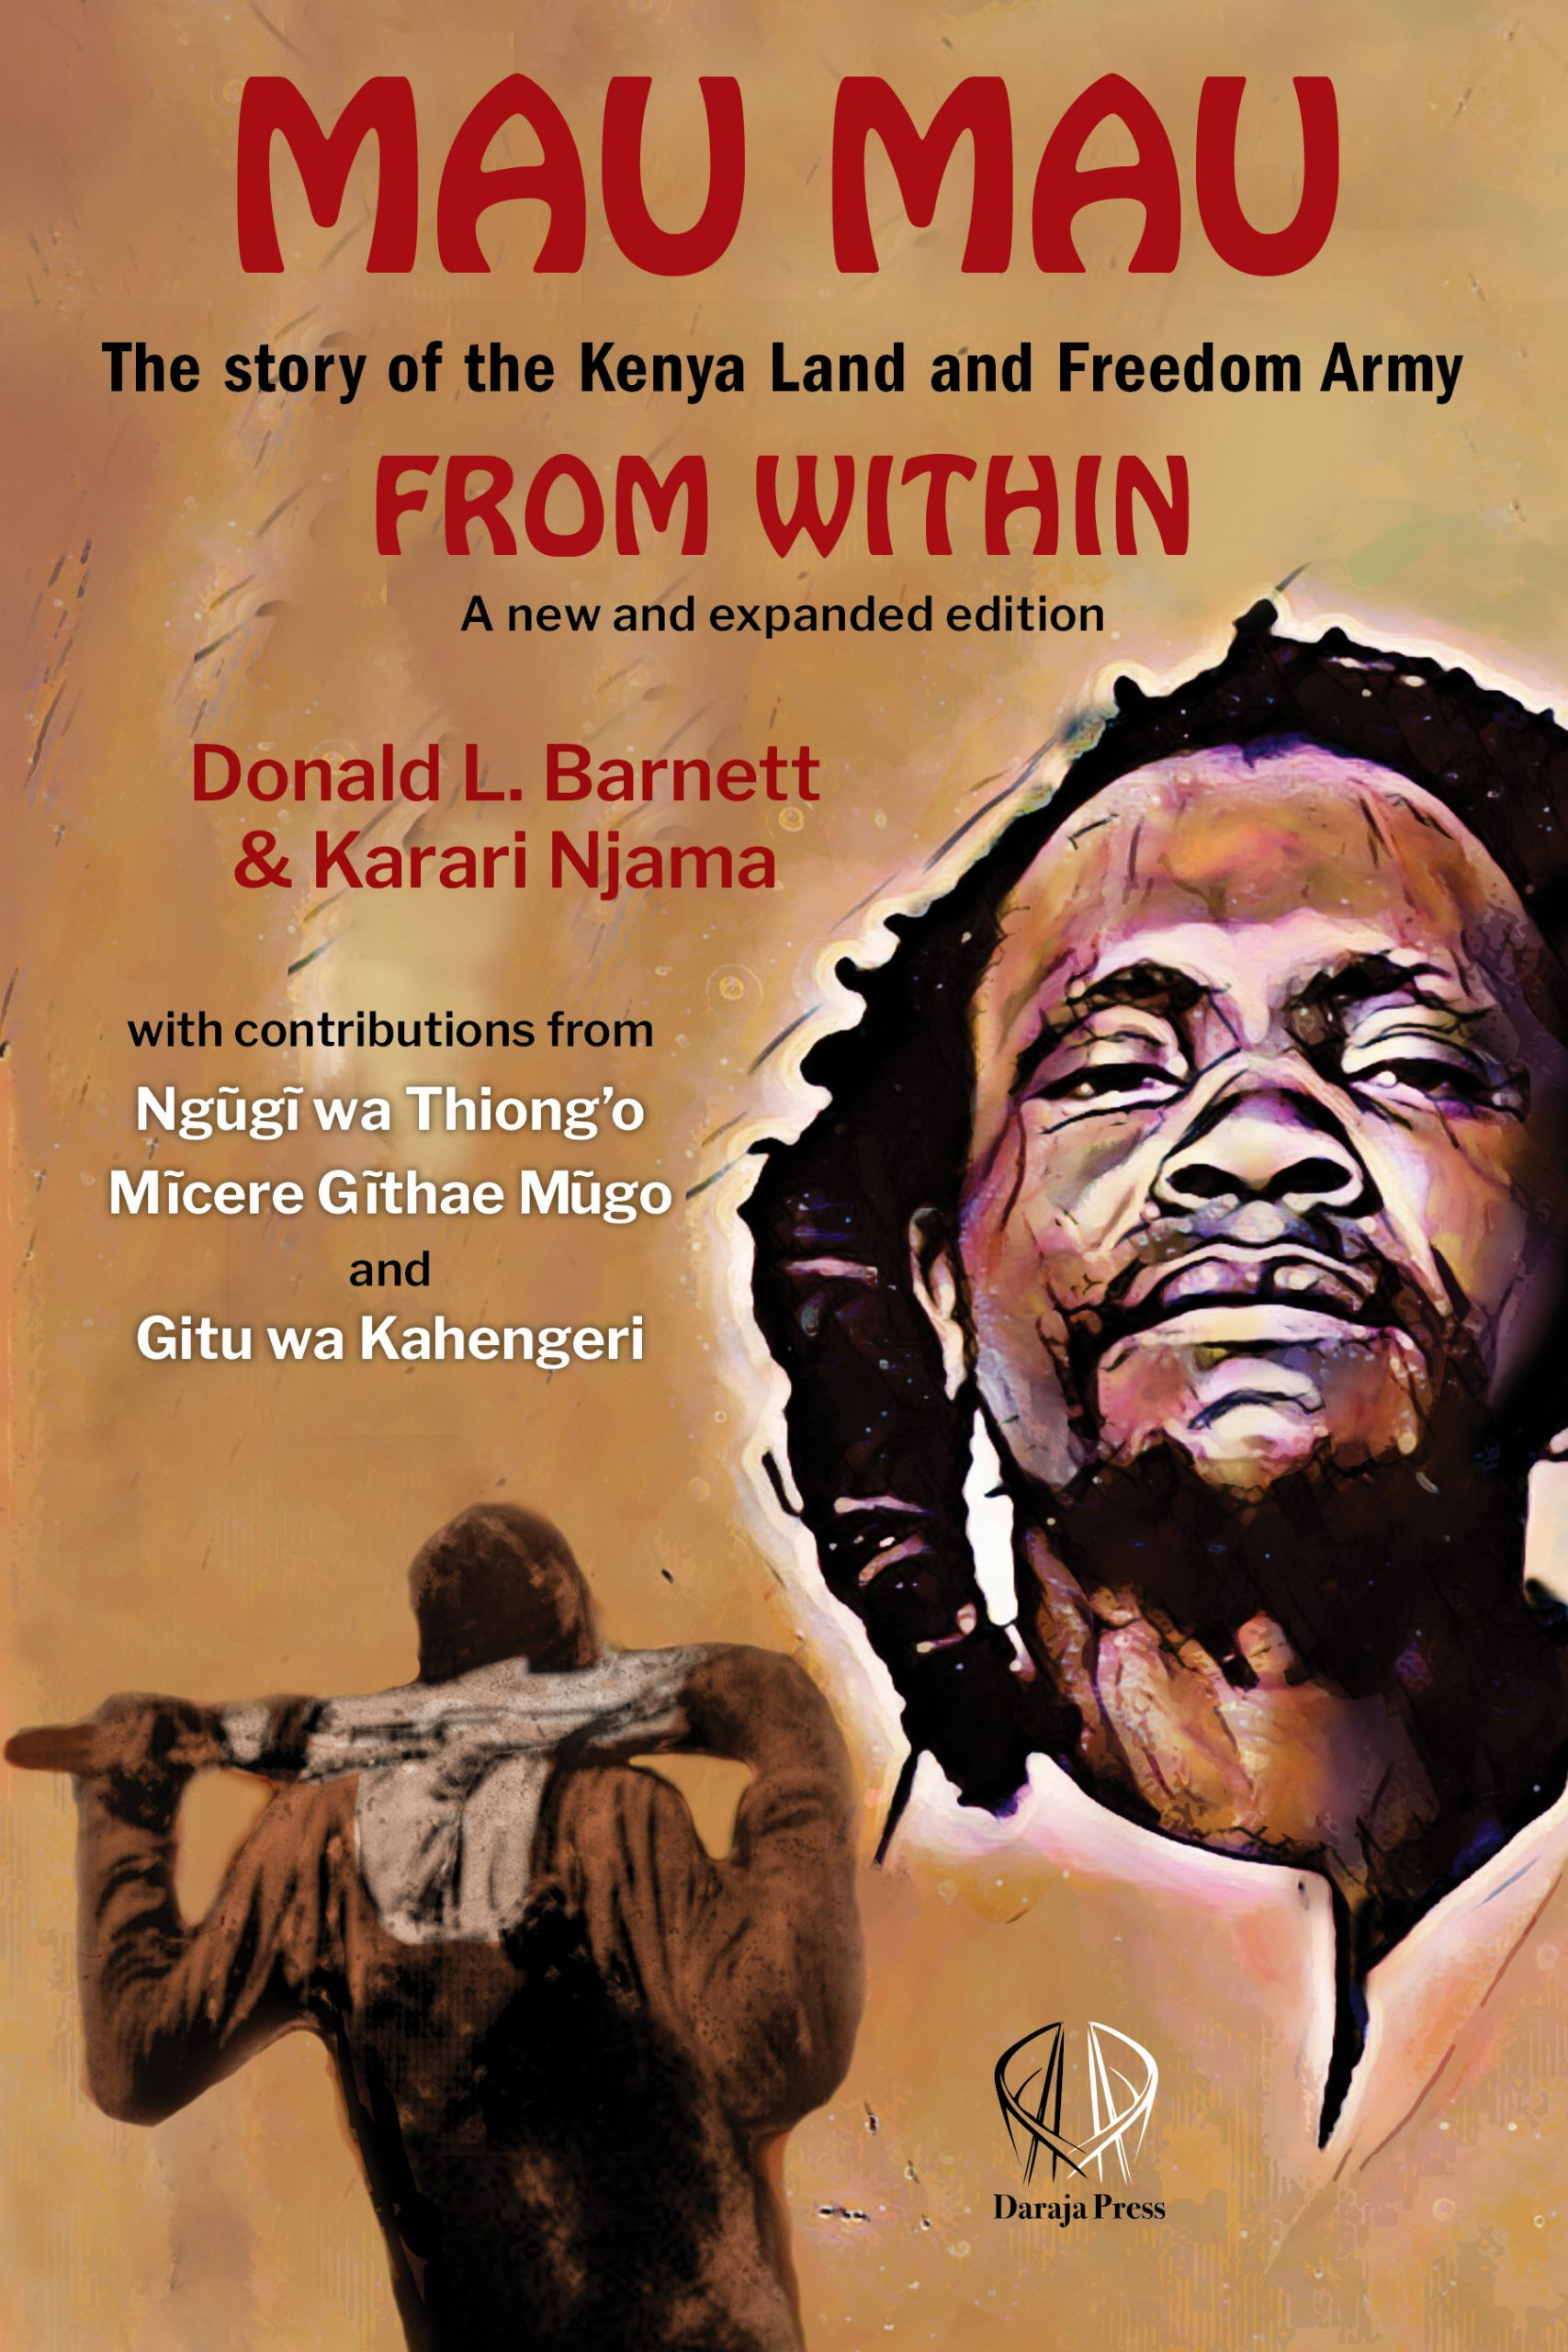 Mau Mau From Within: The Story of the Kenya Land and Freedom Army